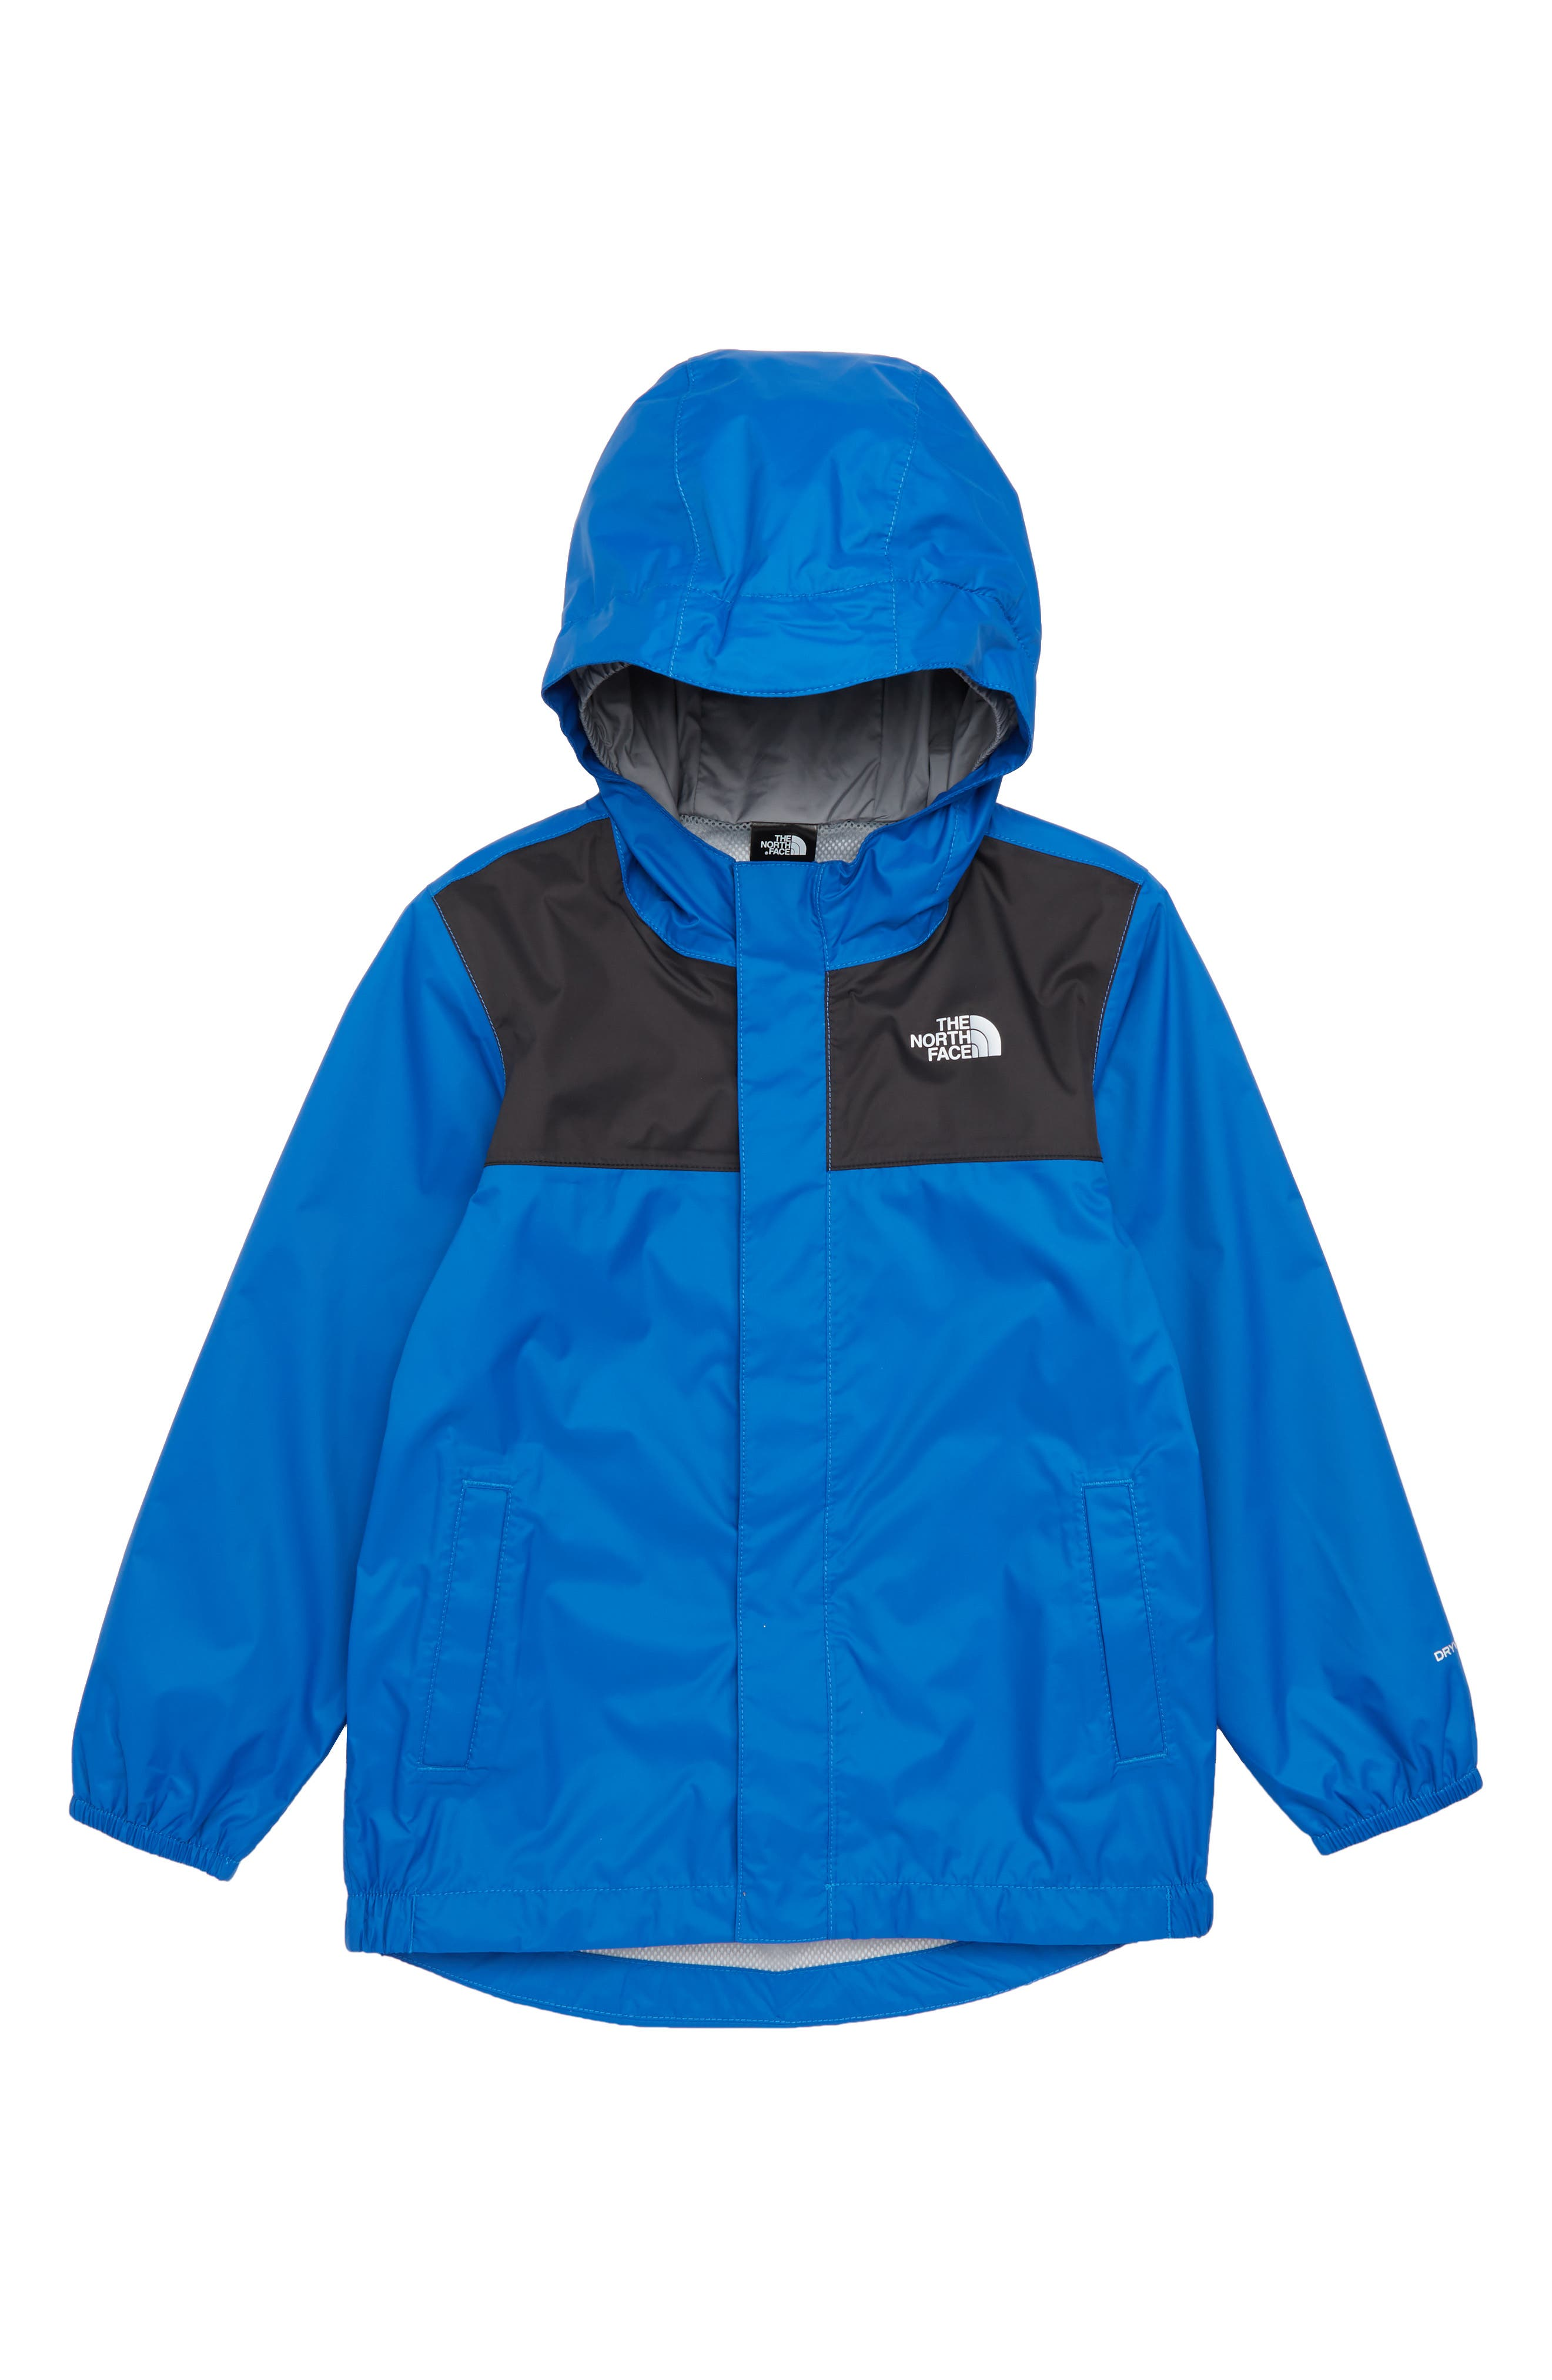 Tailout Hooded Rain Jacket,                             Main thumbnail 1, color,                             Turkish Sea